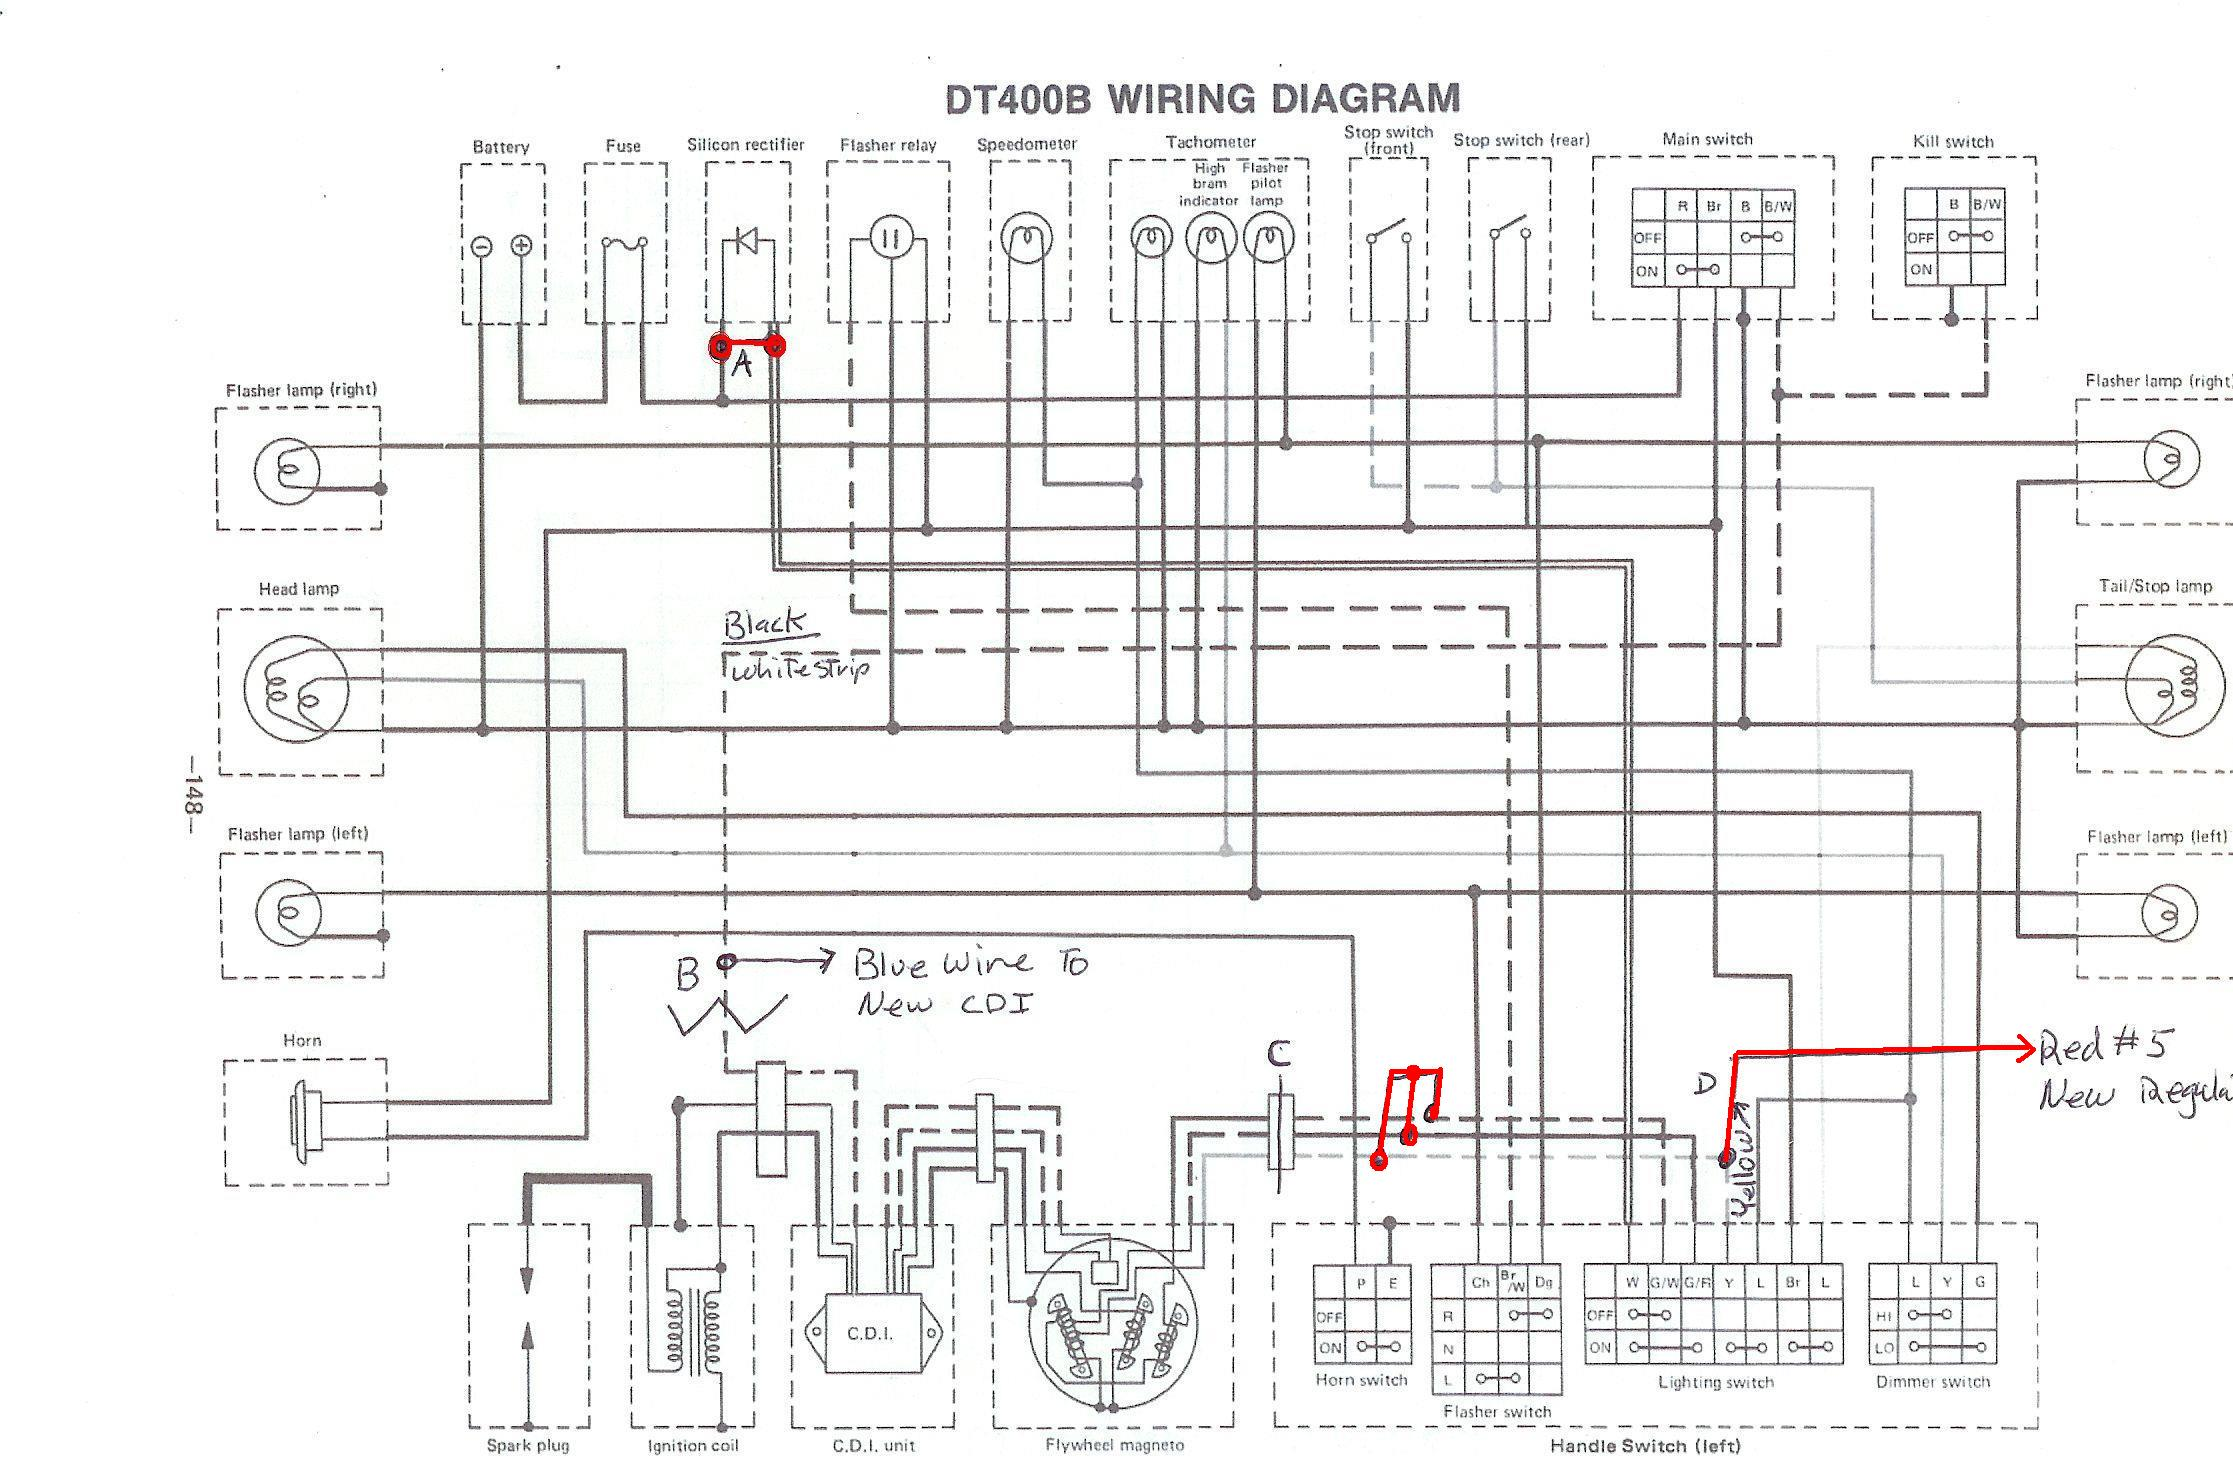 Yamaha Wiring Schematic - Get Rid Of Wiring Diagram Problem